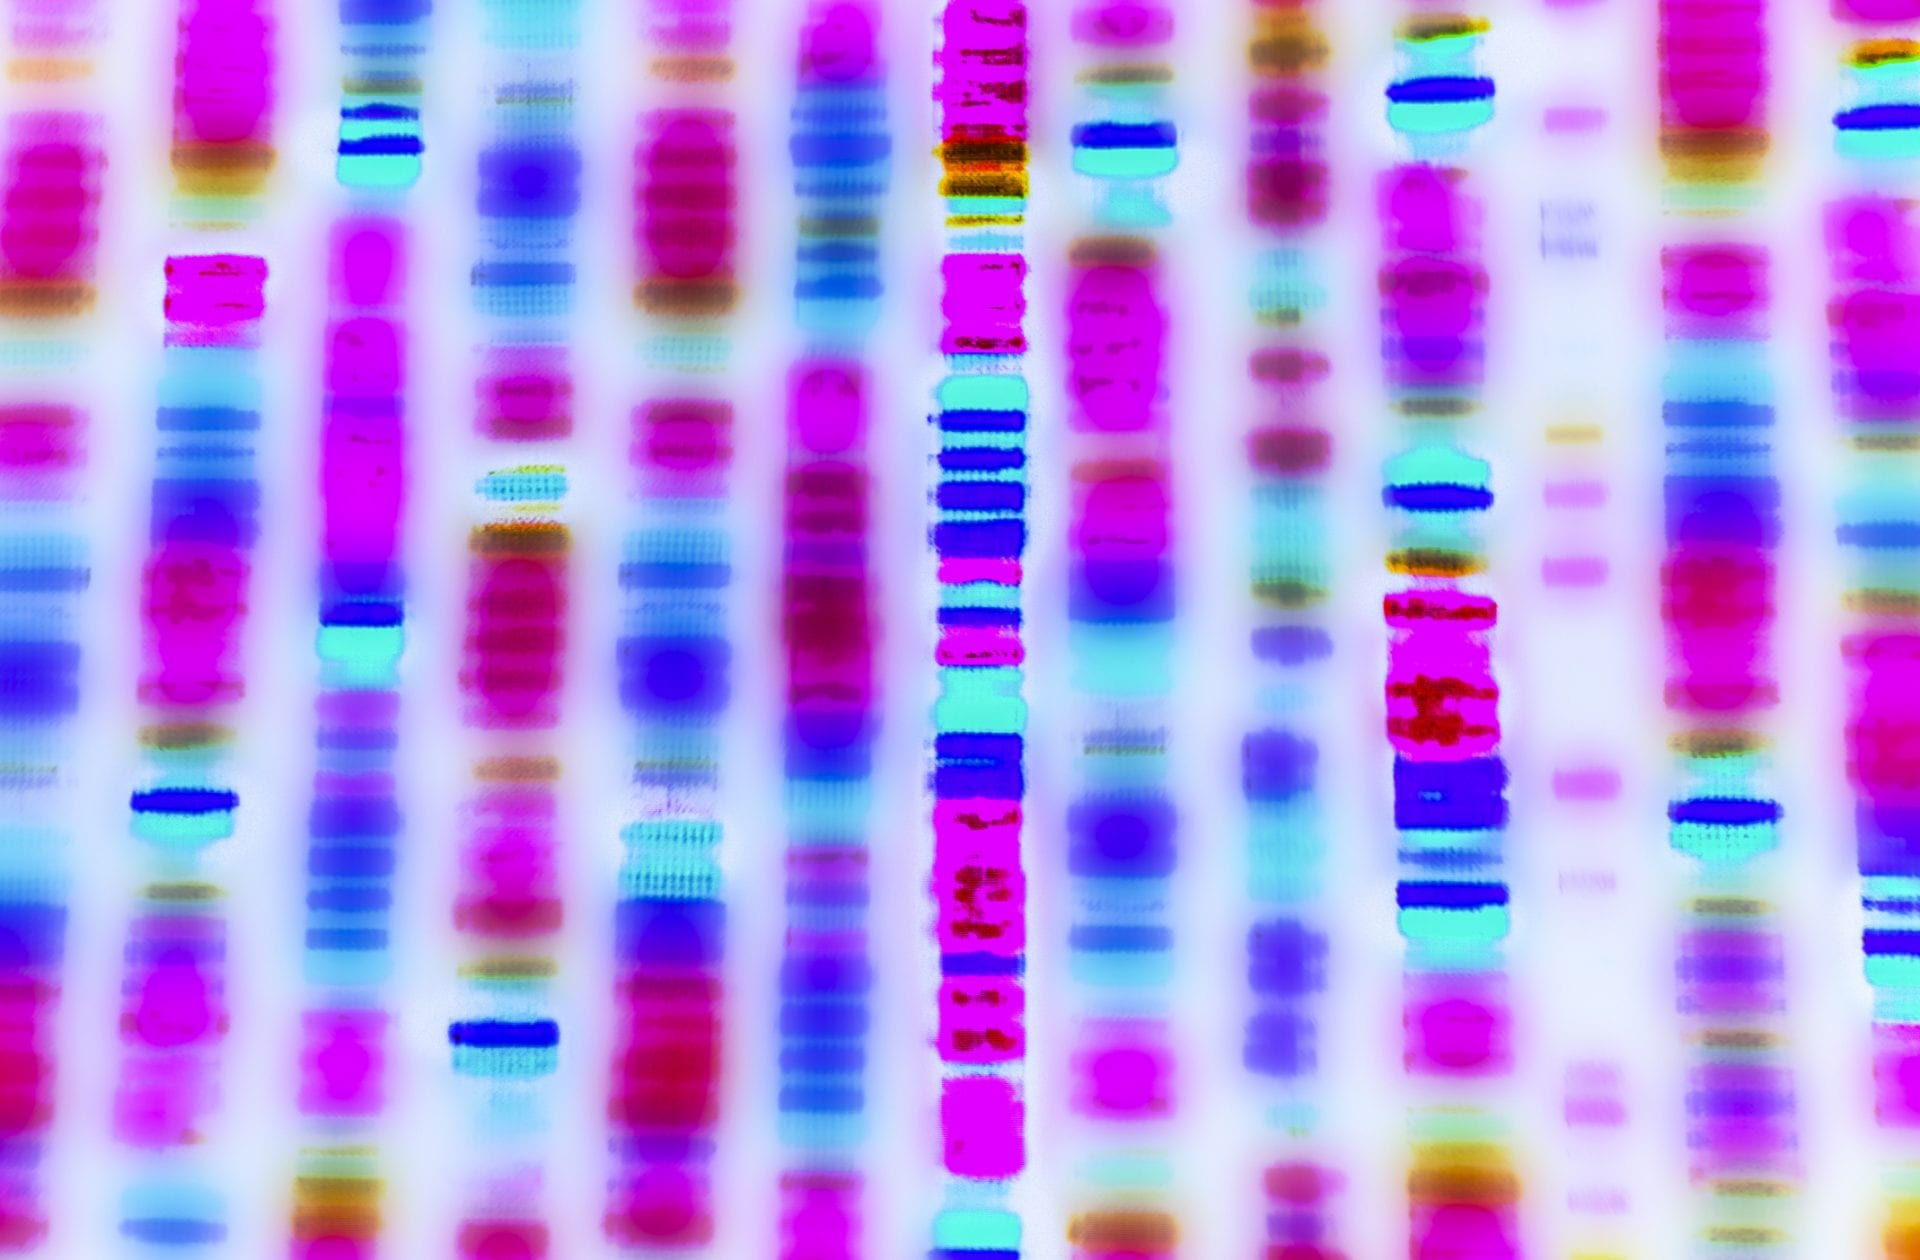 DNA sequence shows color